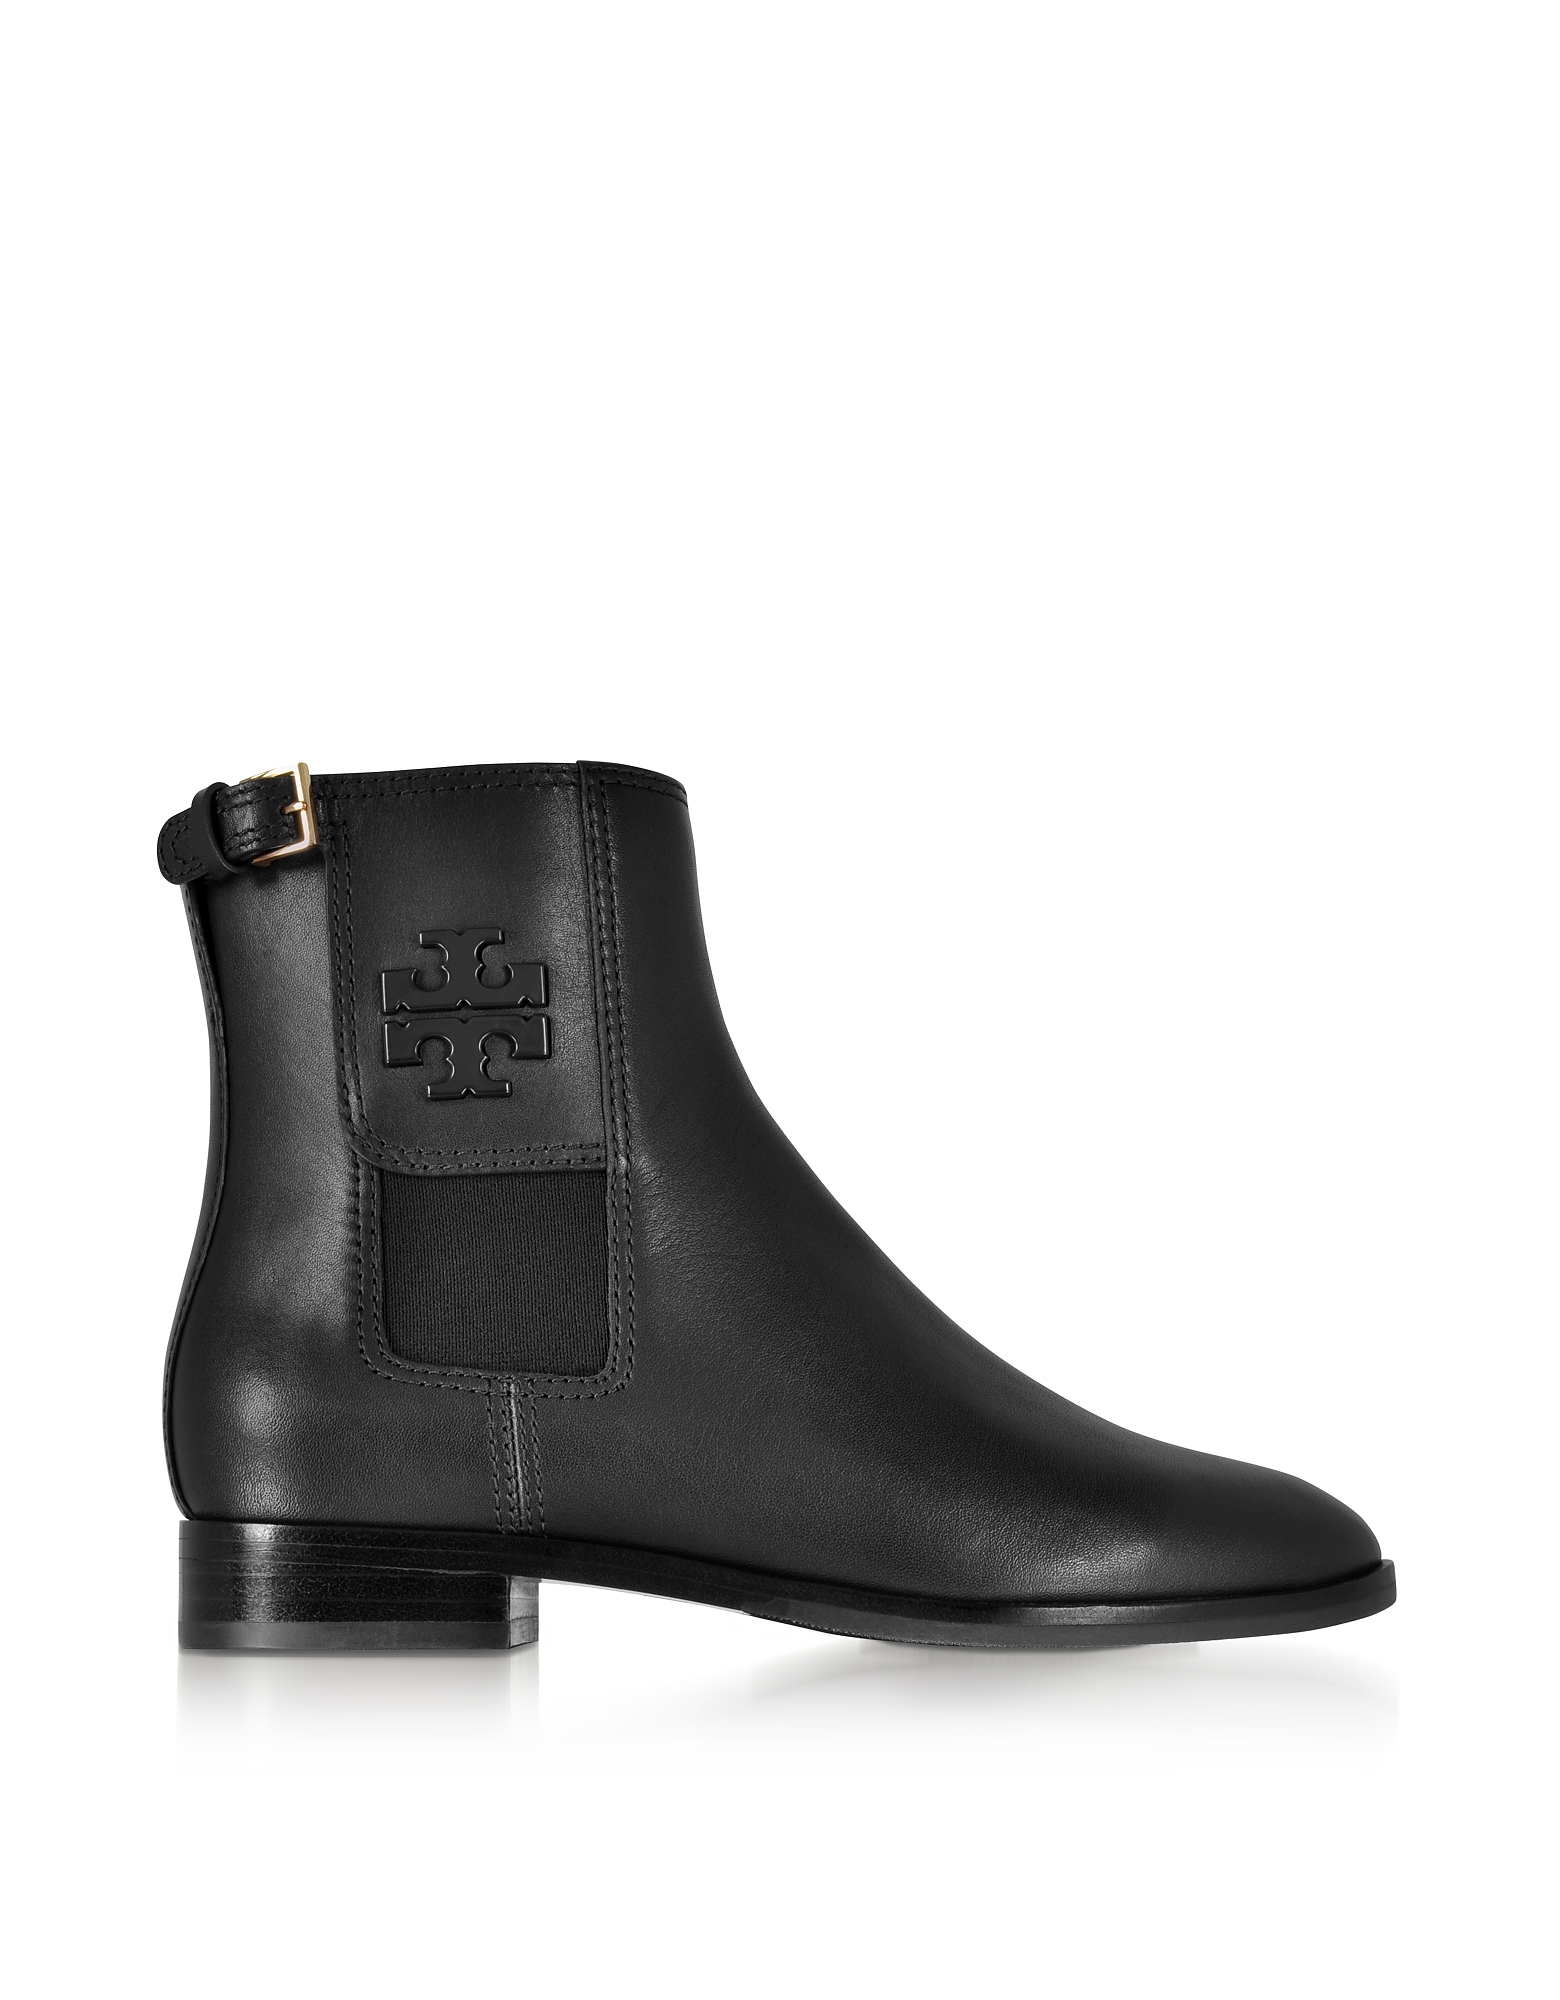 Tory Burch Shoes, Wyatt Black Leather Bootie